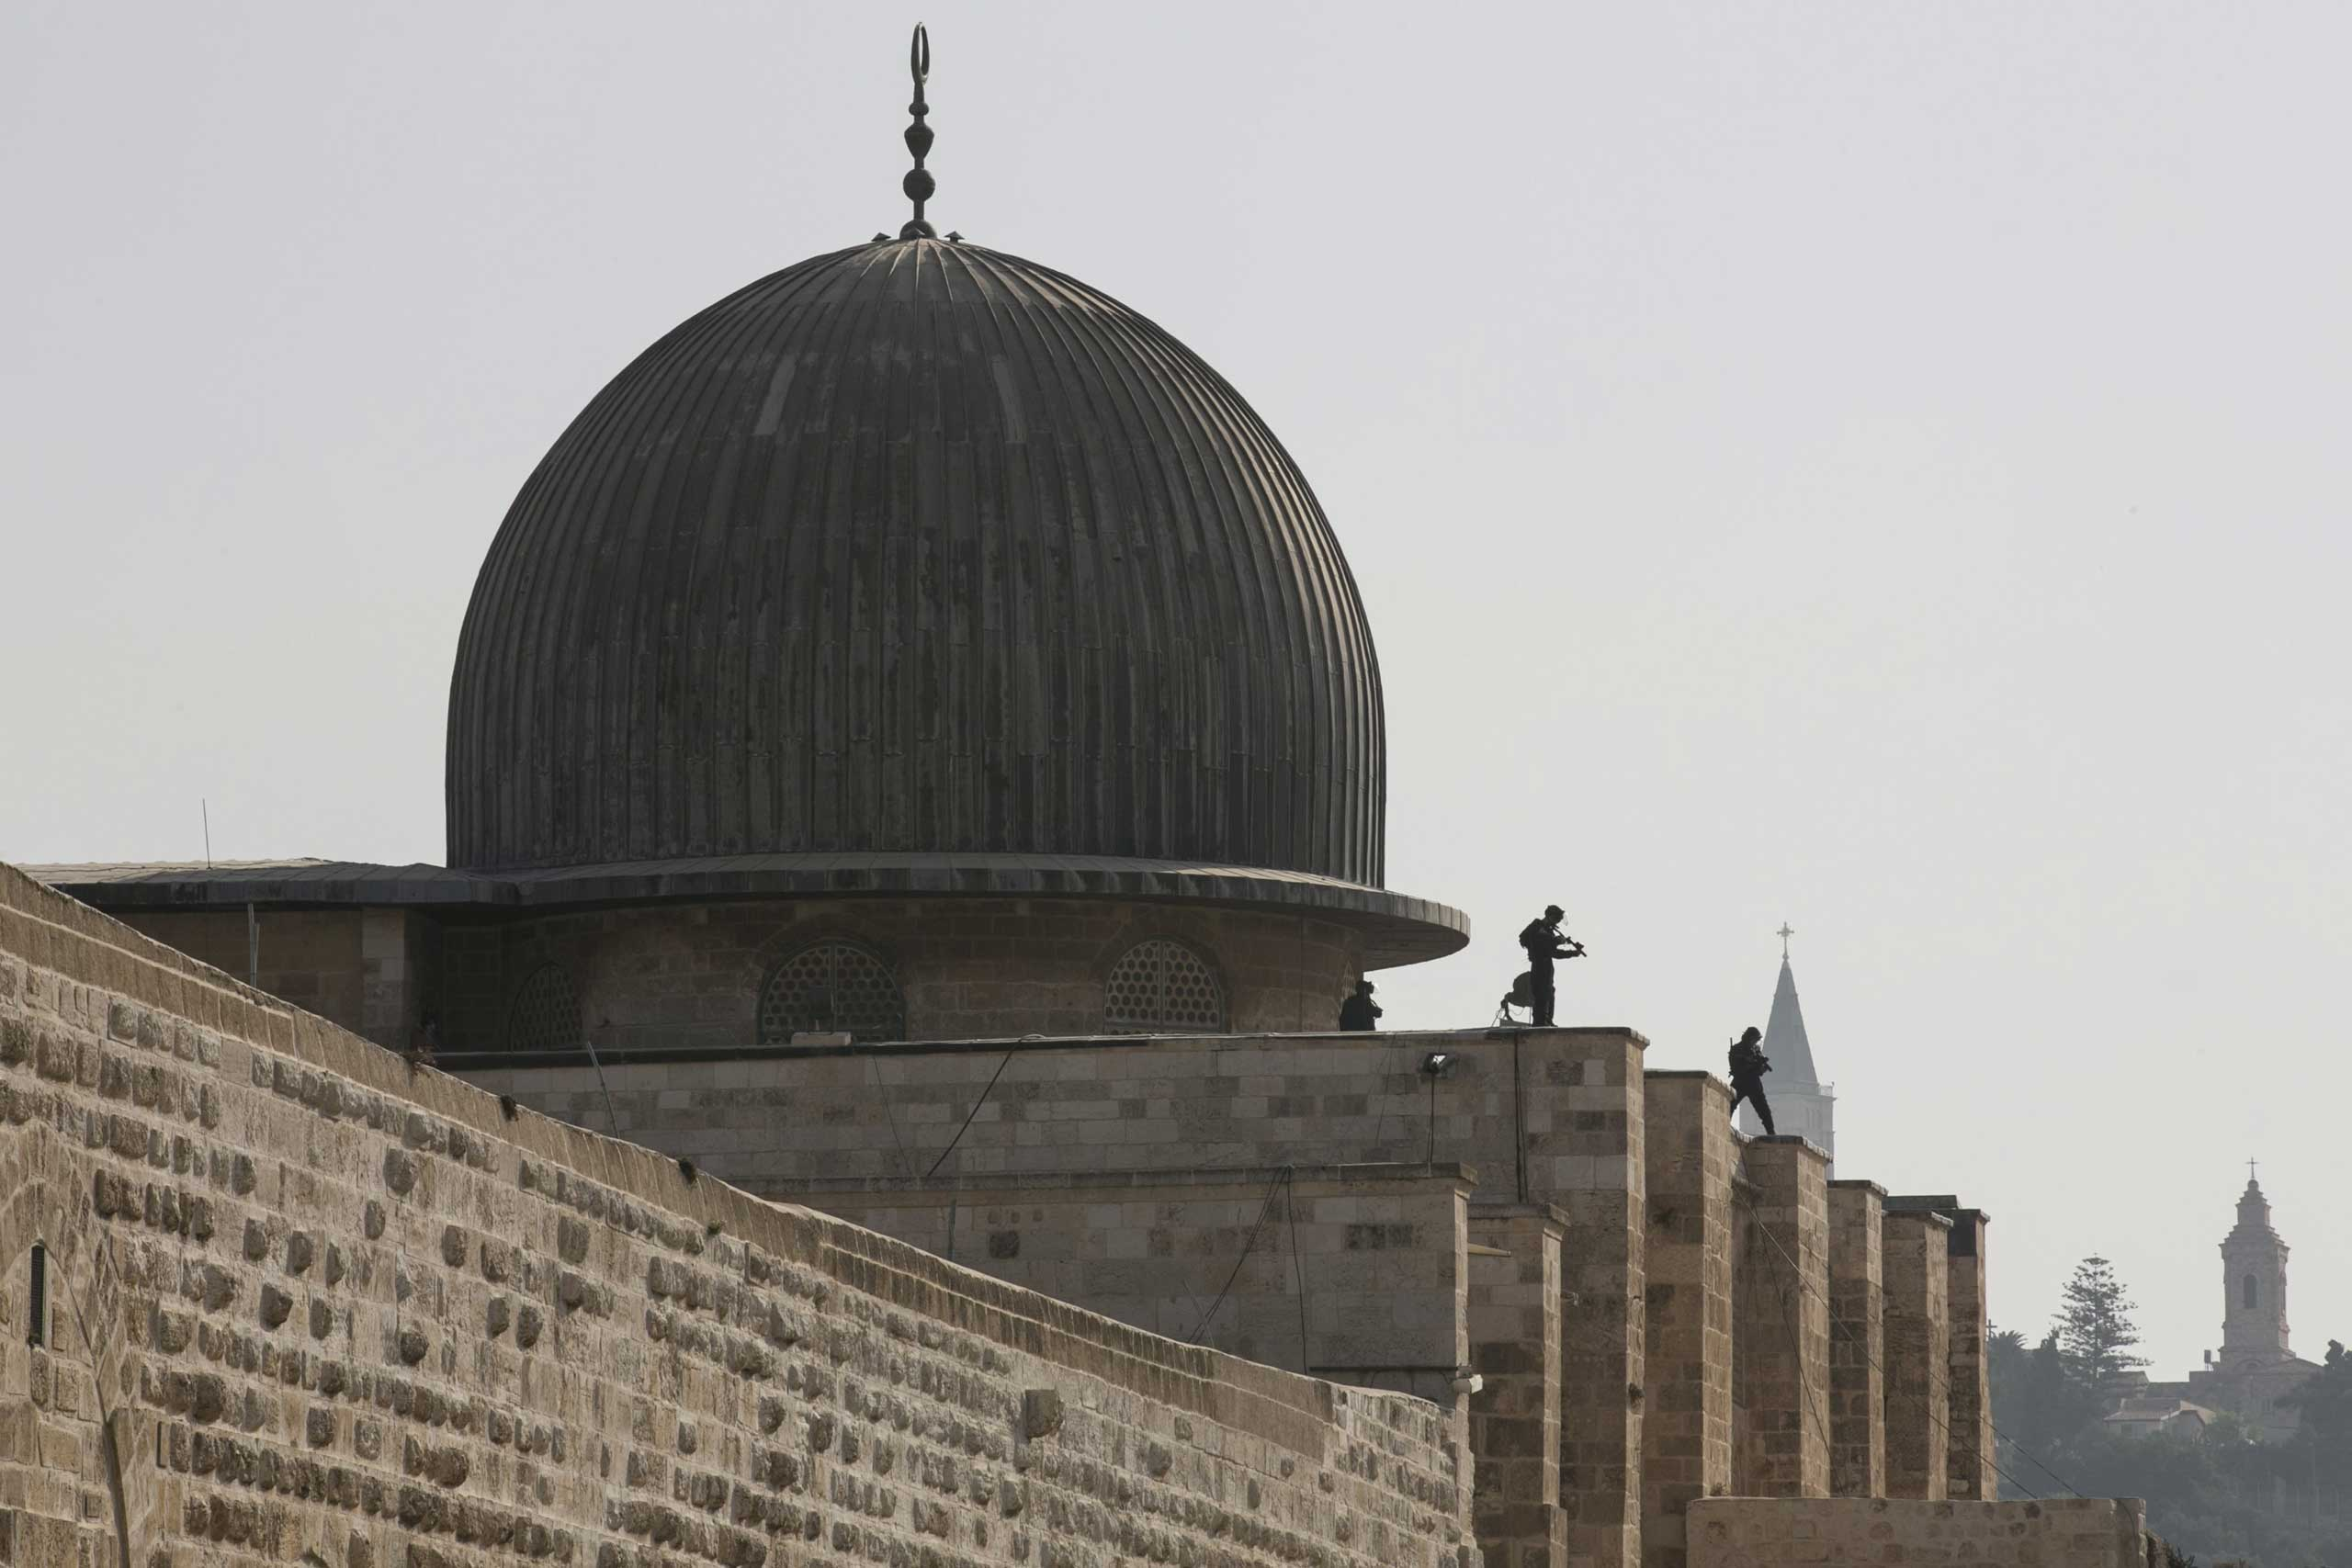 Israeli police officers take positions on the roof of the Al-Aqsa mosque during clashes with Palestinians in Jerusalem's Old City, on Sept. 15, 2015.